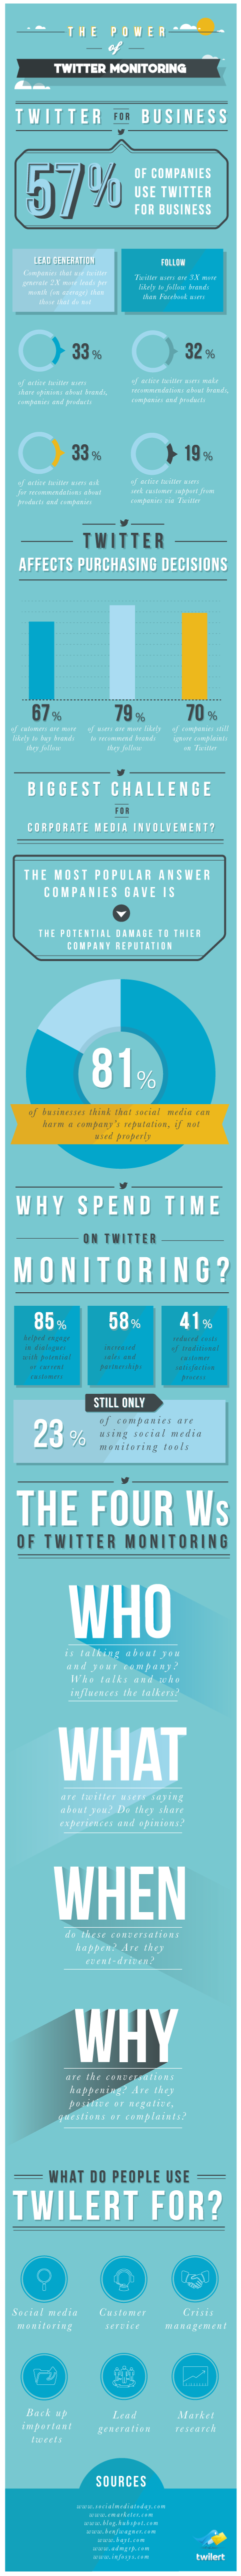 infographic twitter